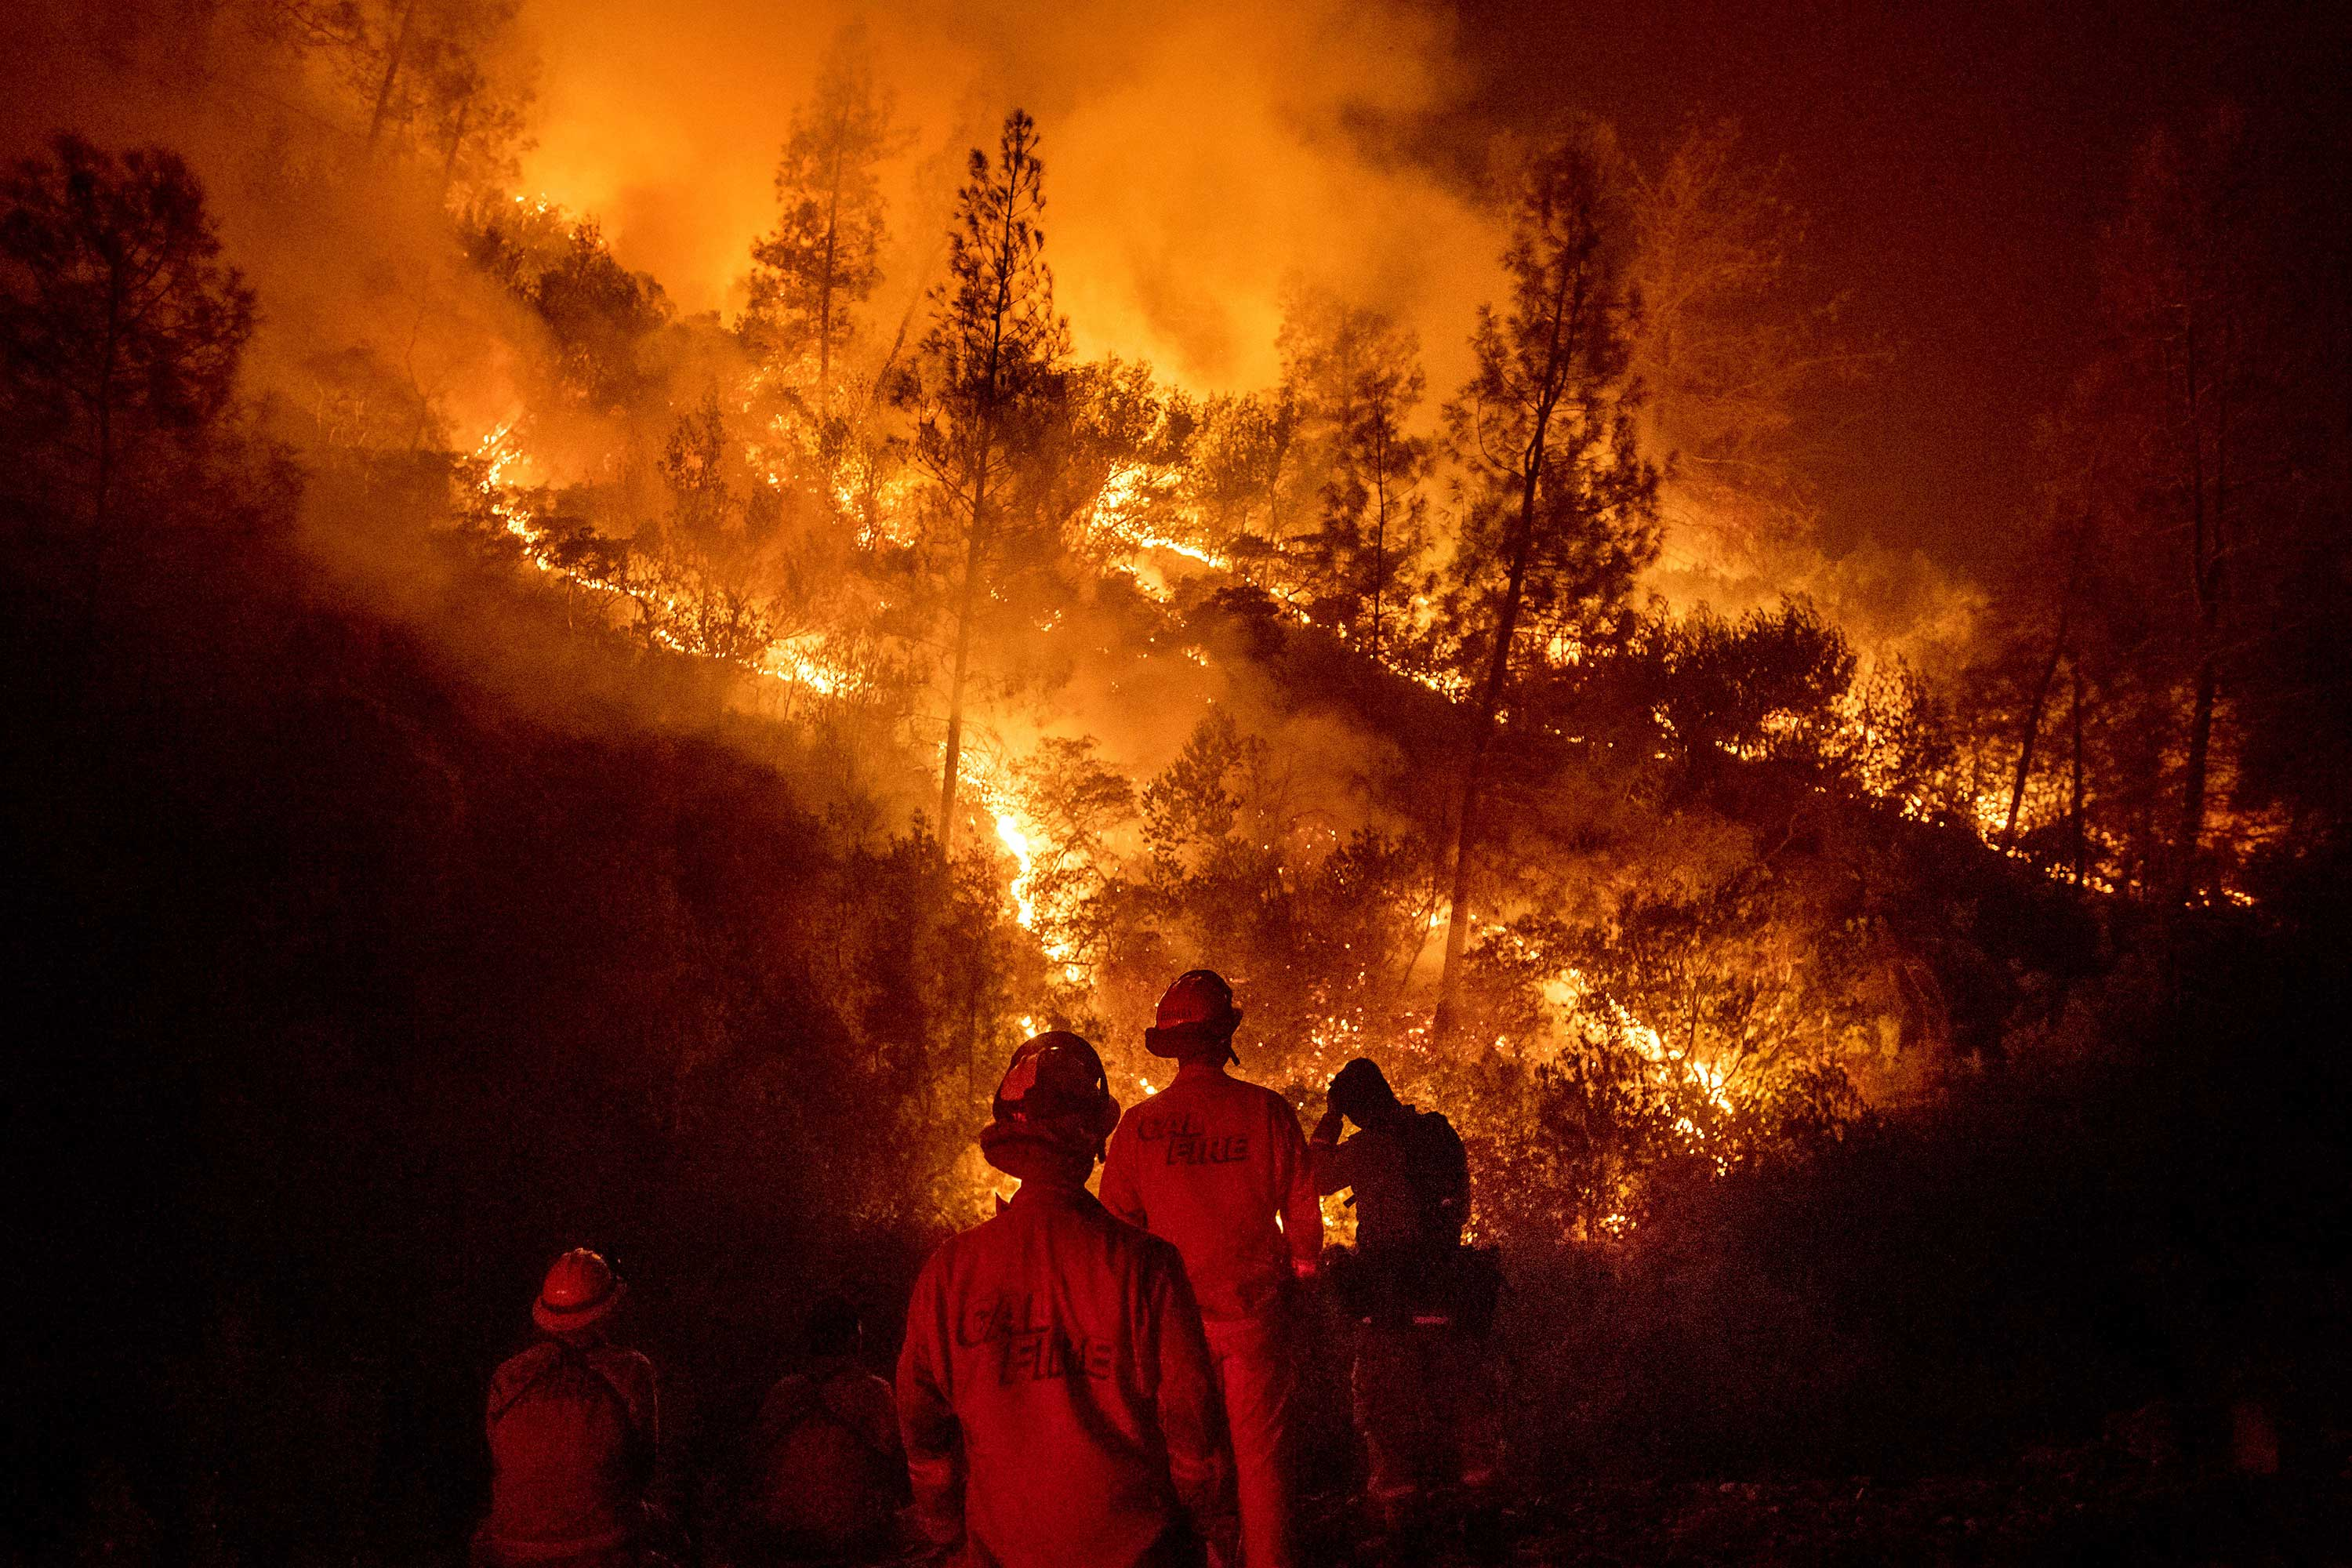 <div class='meta'><div class='origin-logo' data-origin='none'></div><span class='caption-text' data-credit='Noah Berger/AP Photo'>Firefighters monitor a backfire while battling the Ranch Fire, part of the Mendocino Complex Fire, on Tuesday, Aug. 7, 2018, near Ladoga, Calif.</span></div>